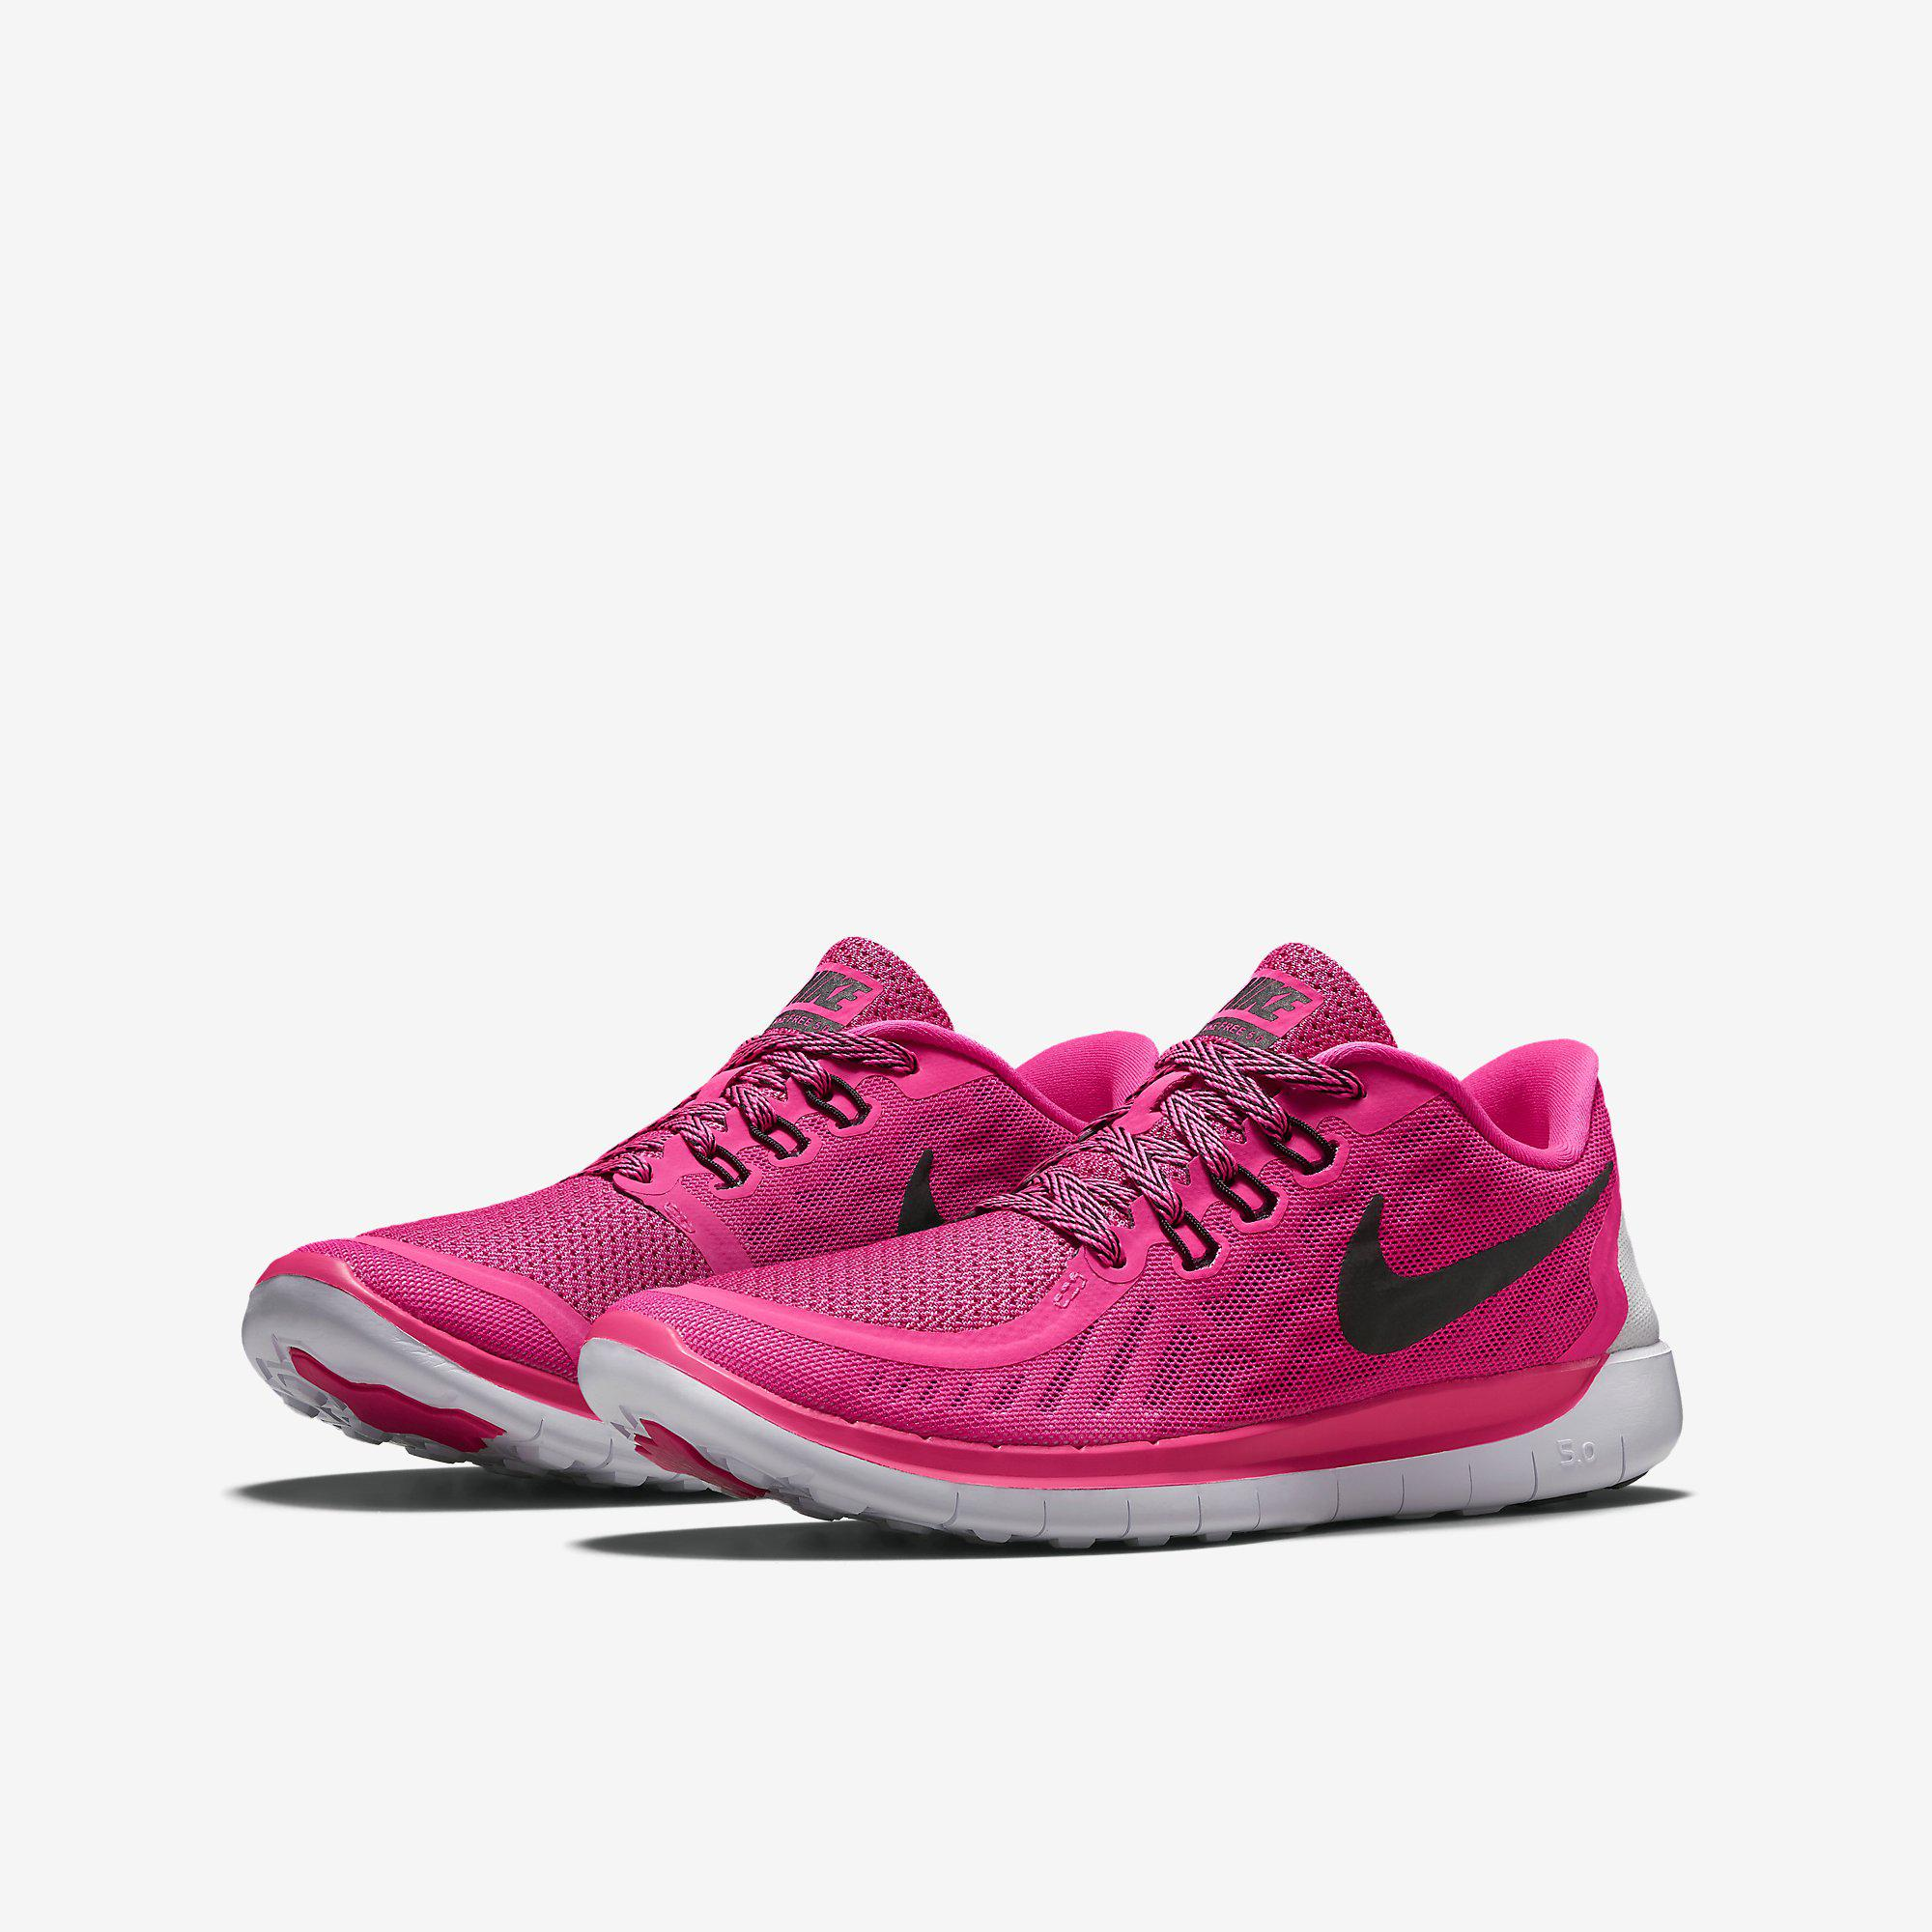 Nike Running Shoes For Girls Pink